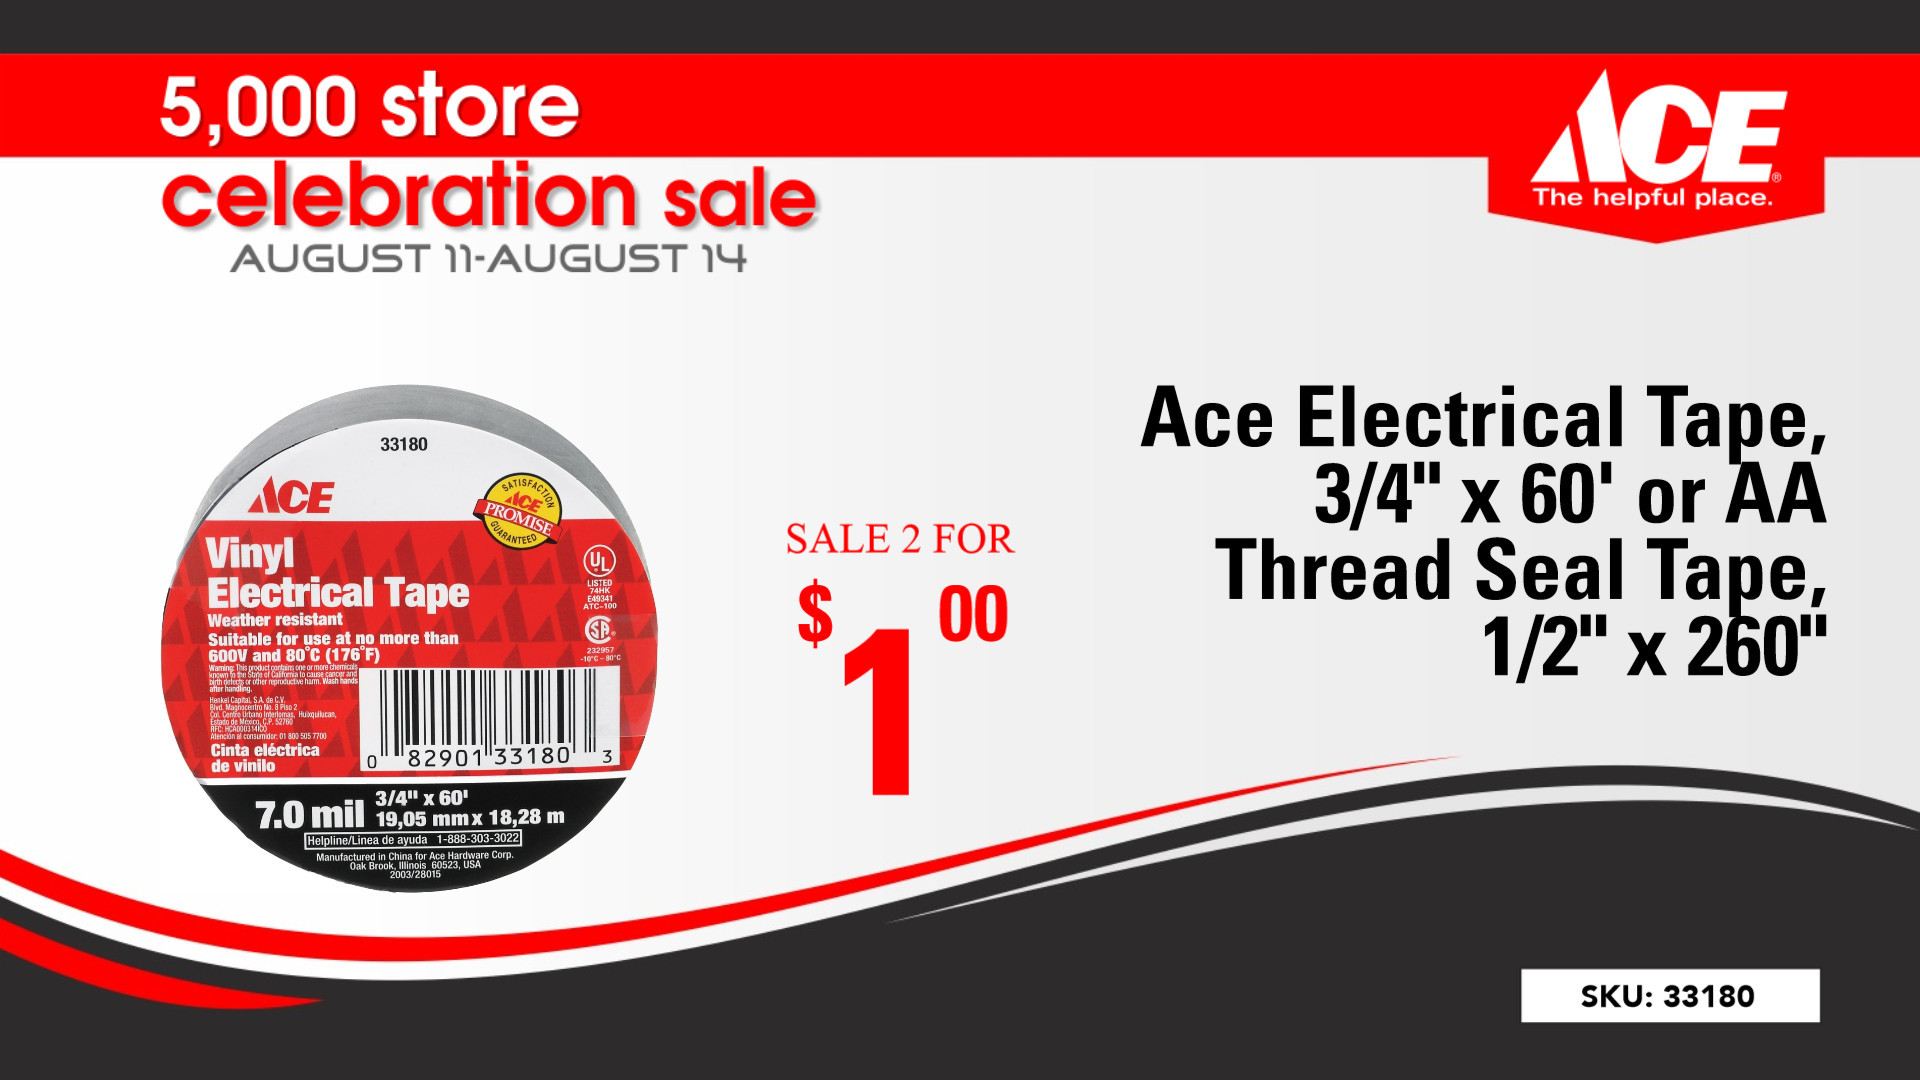 Come Celebrate Ace Hardware's 5000 Store Celebration With